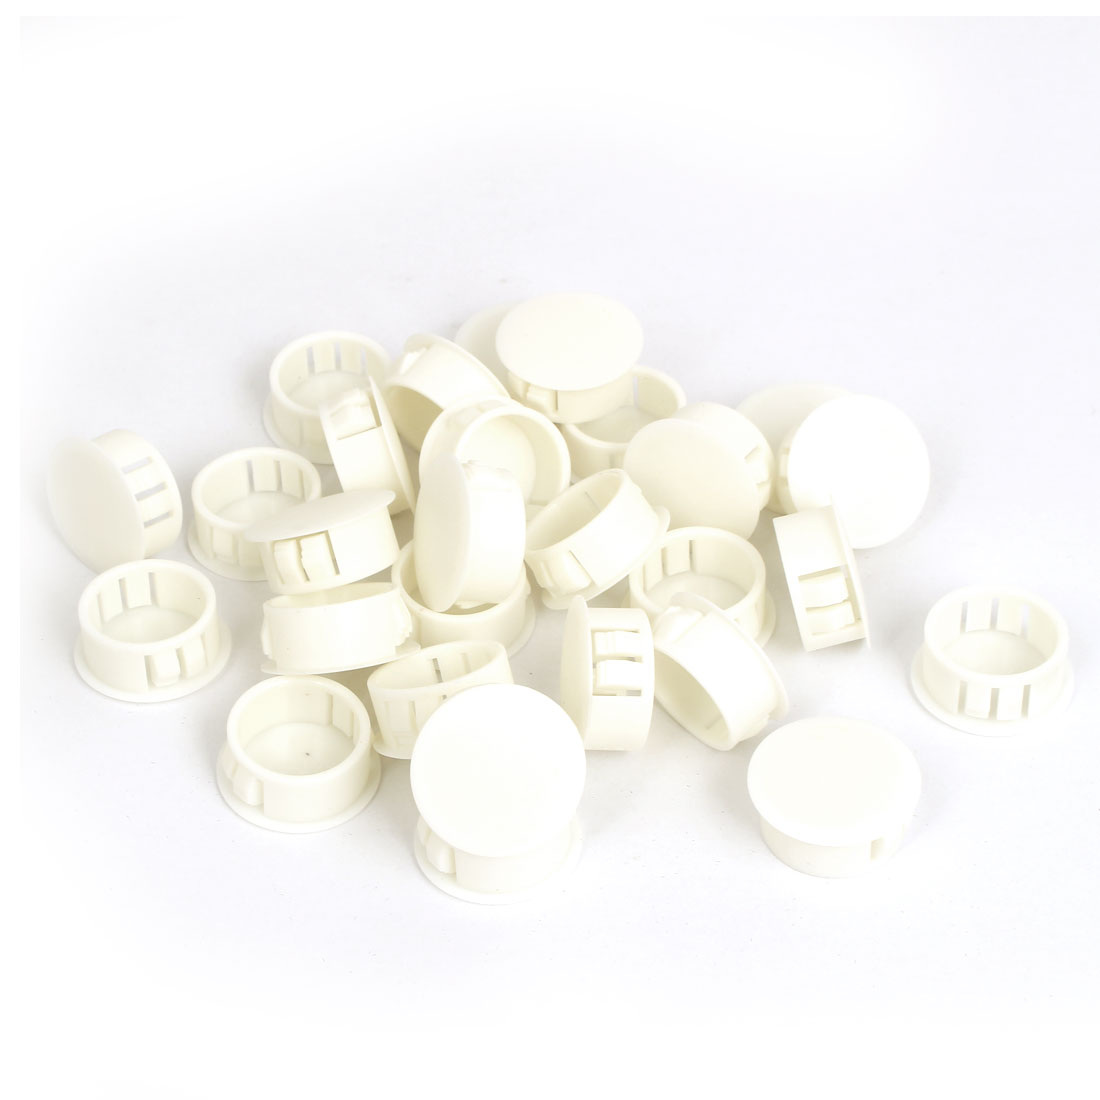 28 Pcs SKT-22 Insulated White Plastic Snap in Mount Blank Locking Hole Cover Harness Fastener 22.2mm